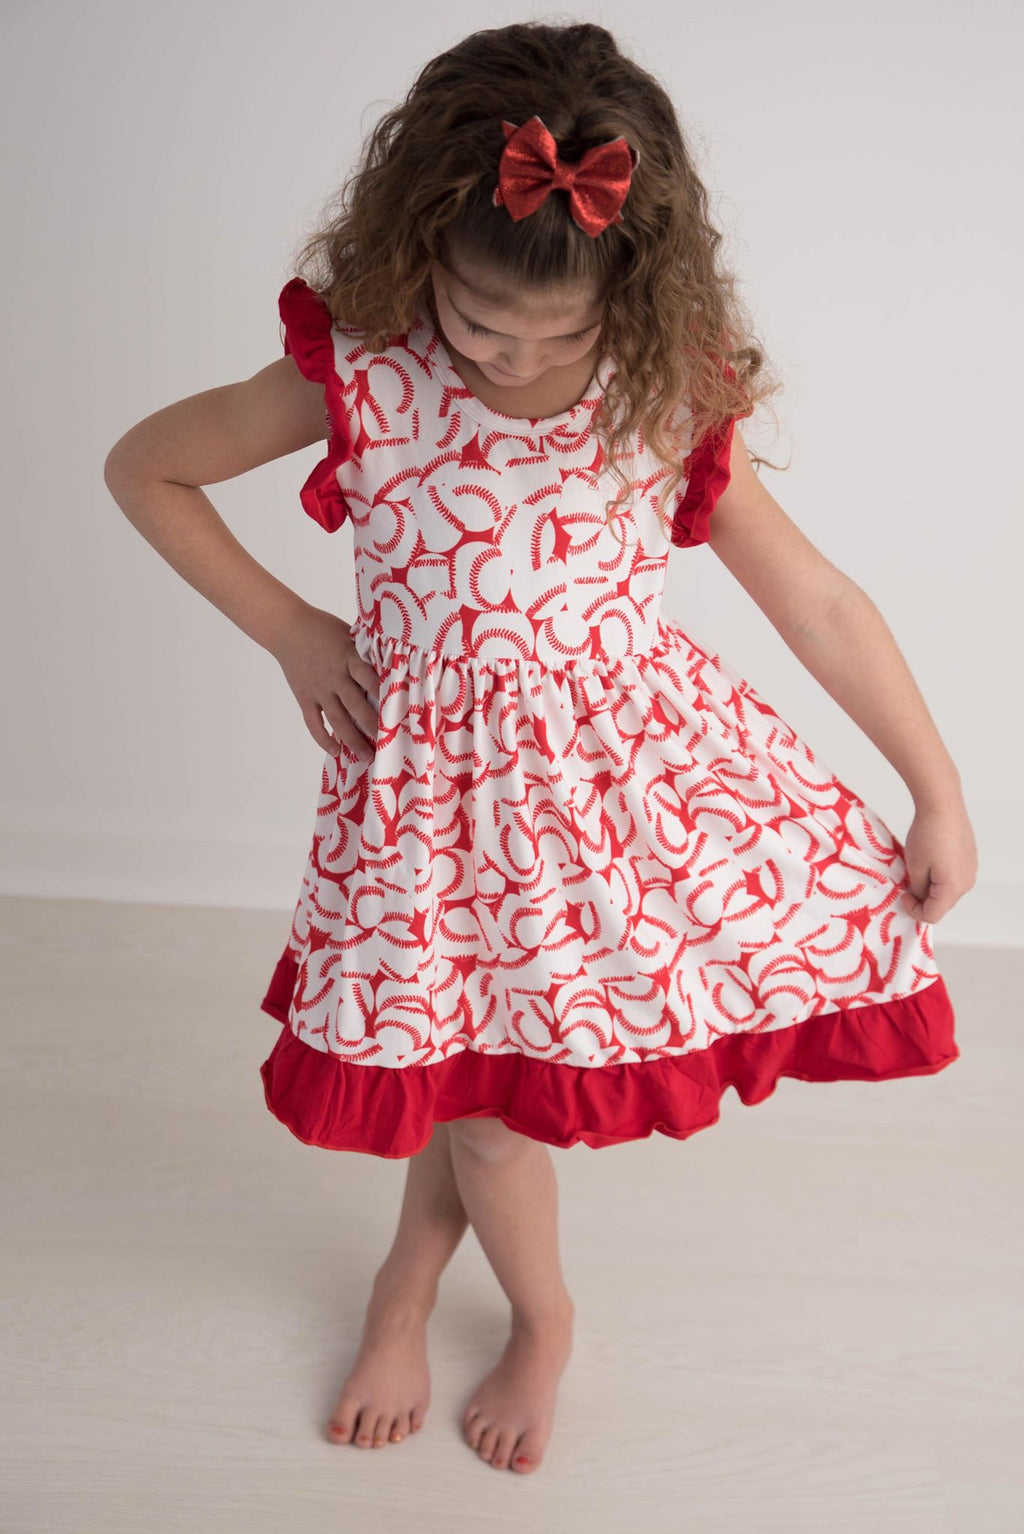 BASEBALL MARIBELLE DRESS